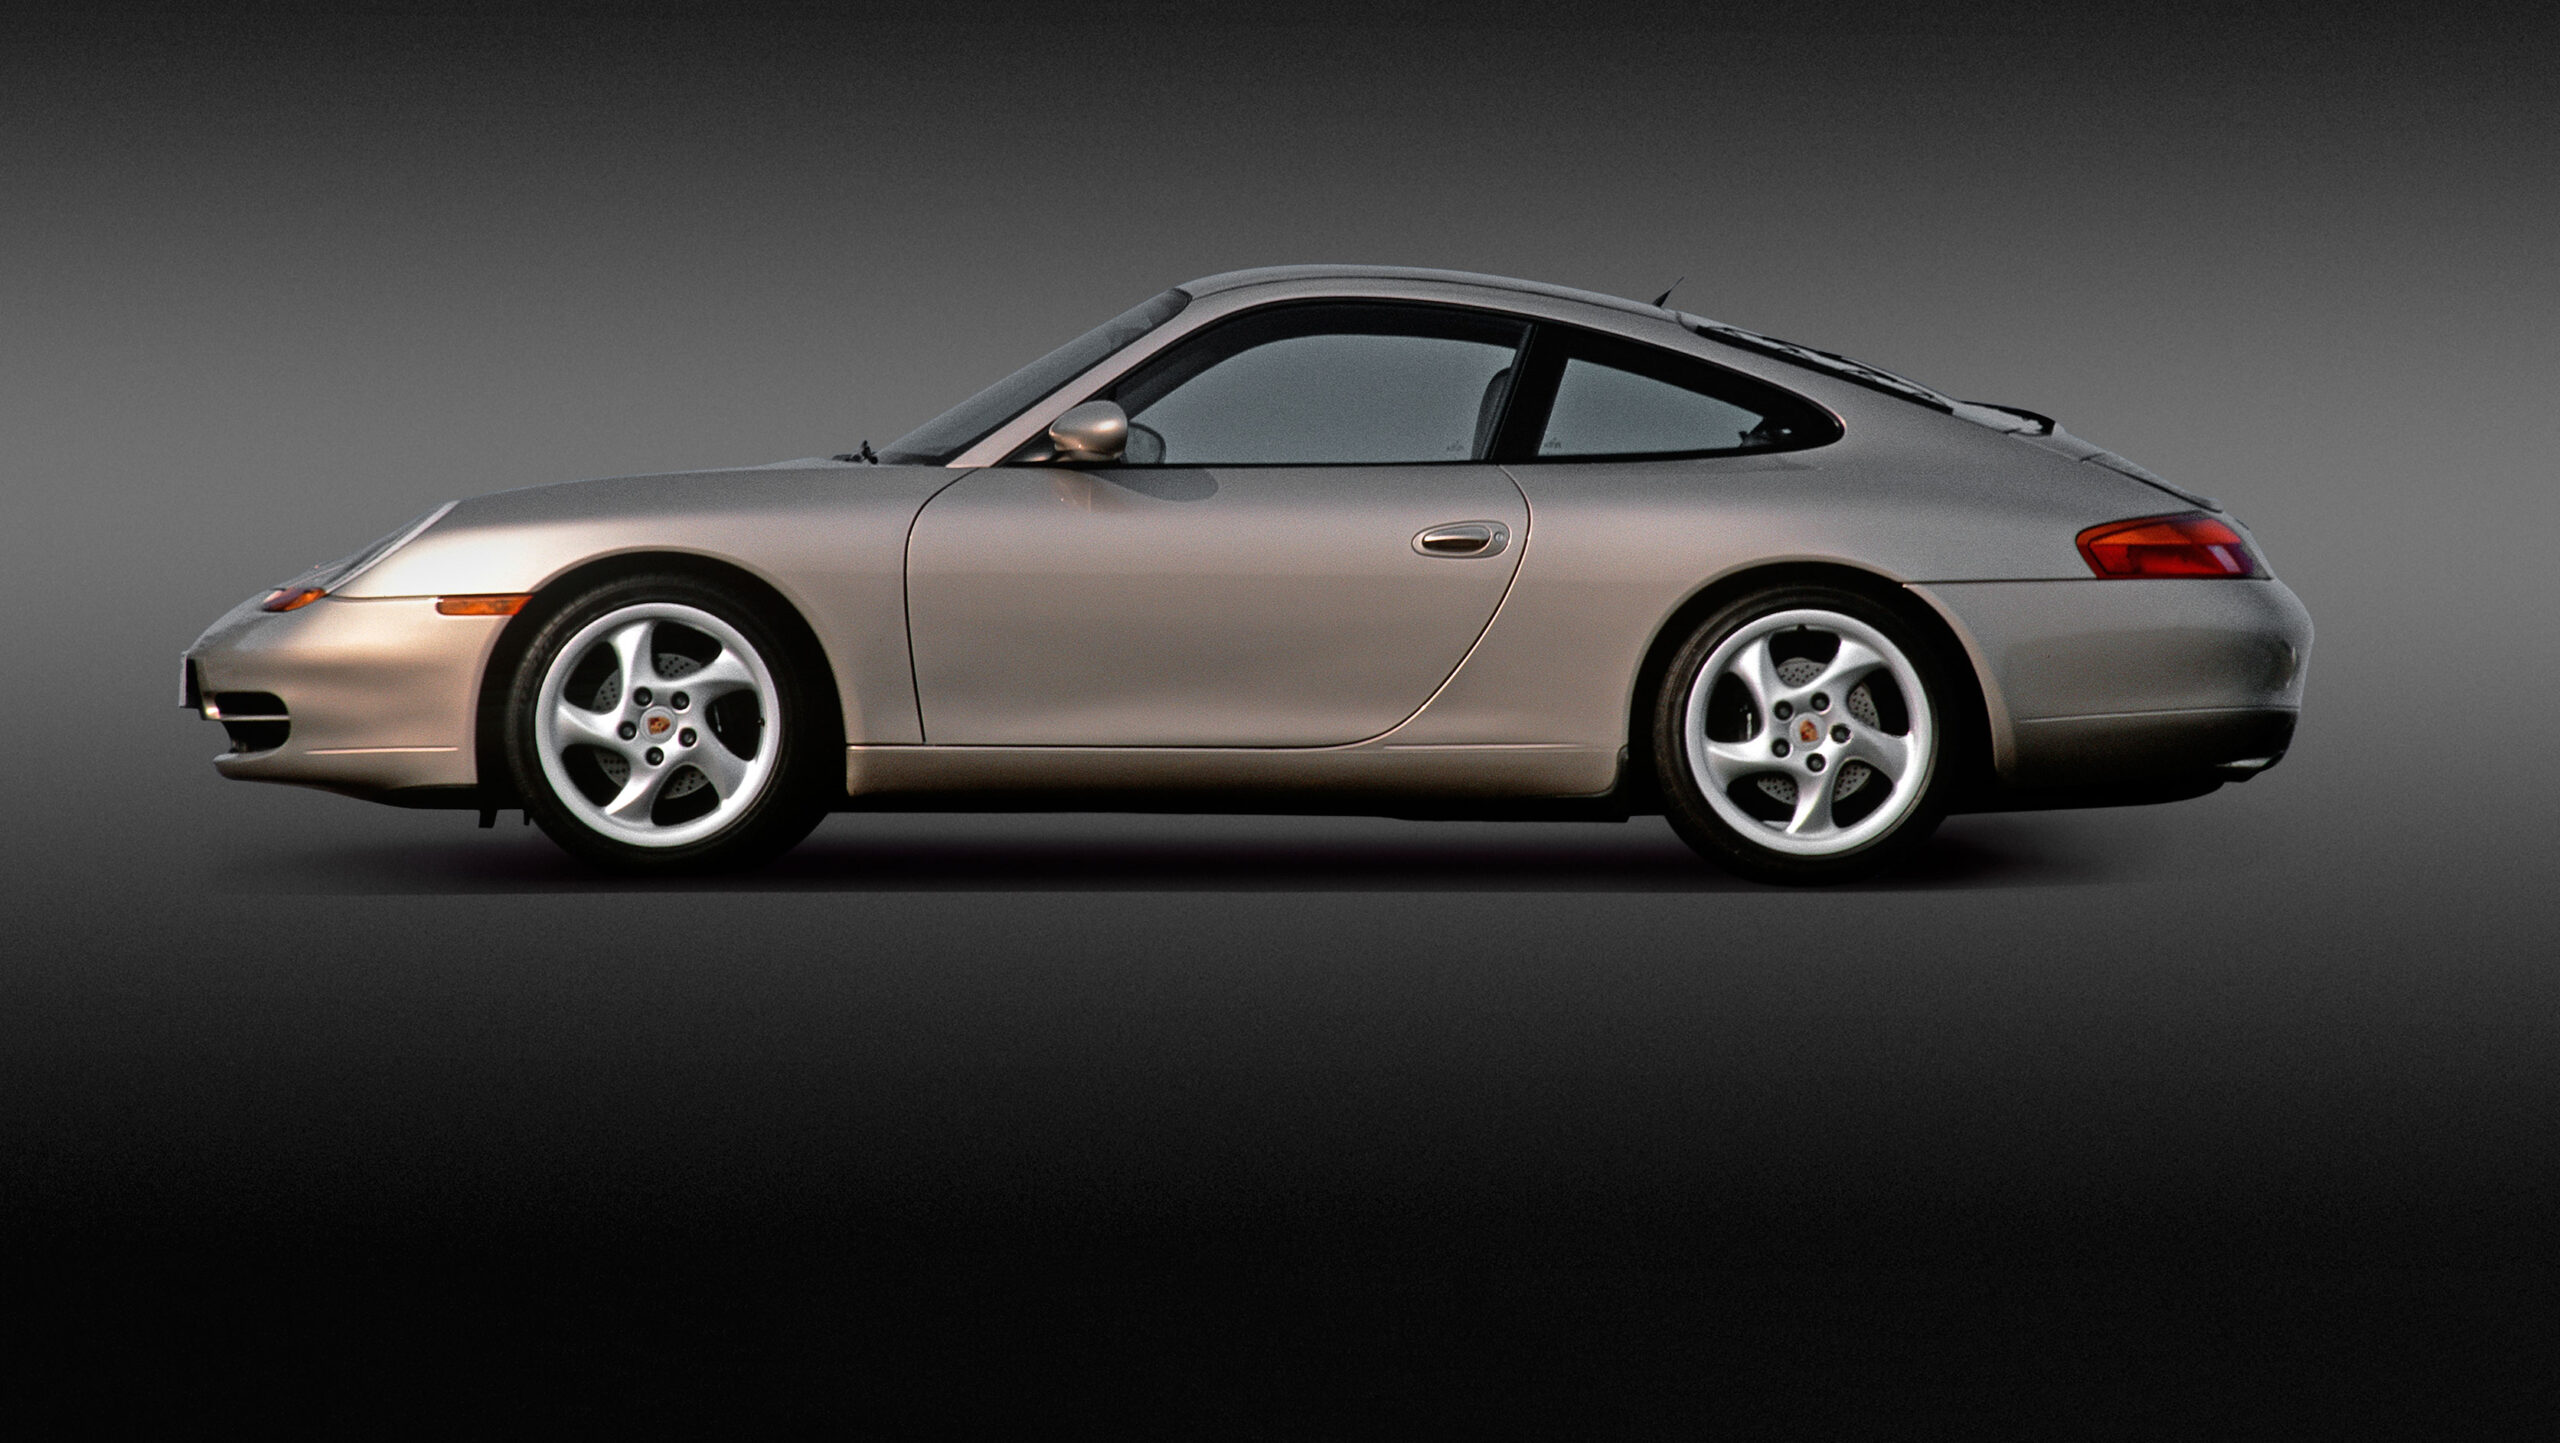 The 996 First Water-Cooled 911